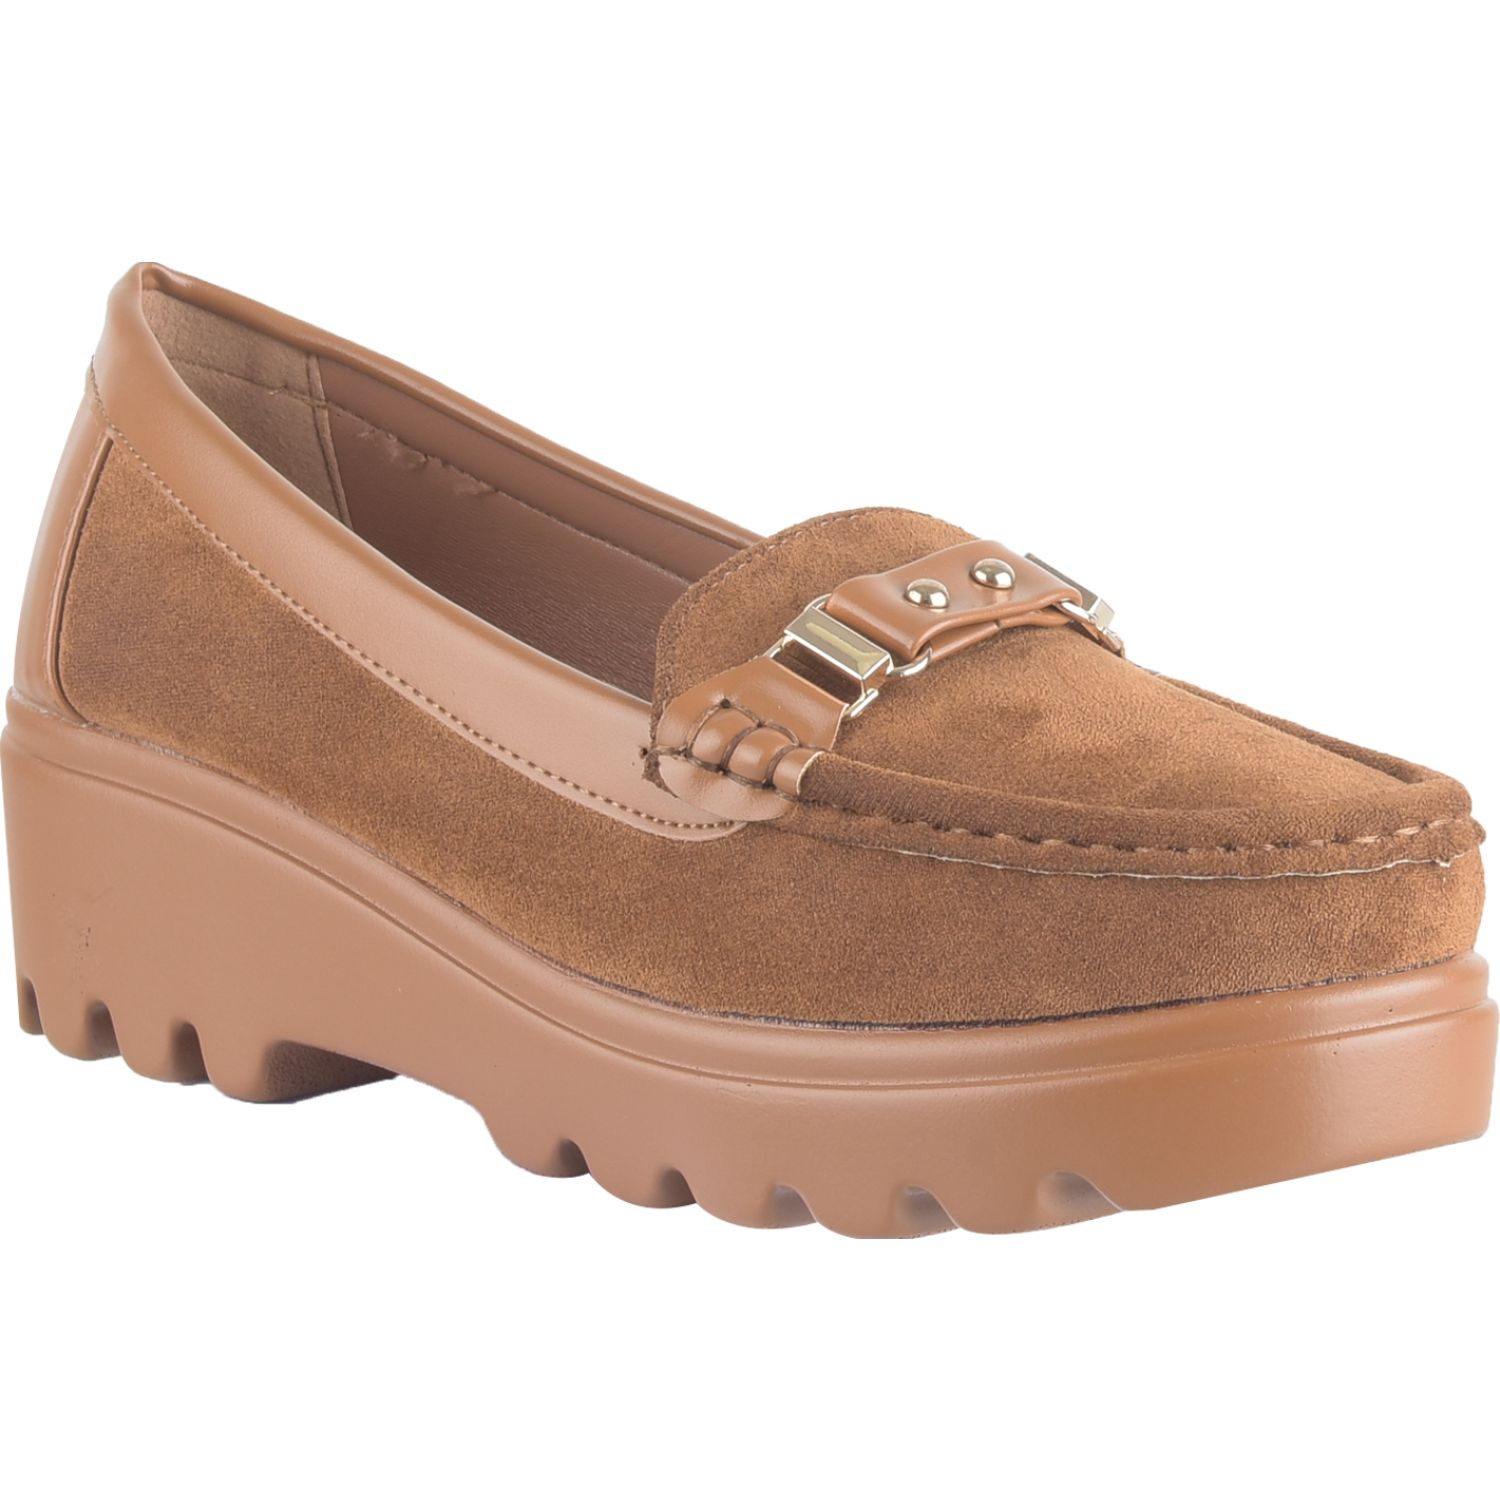 Platanitos M 3048 Marron Mocasines y Slip-Ons